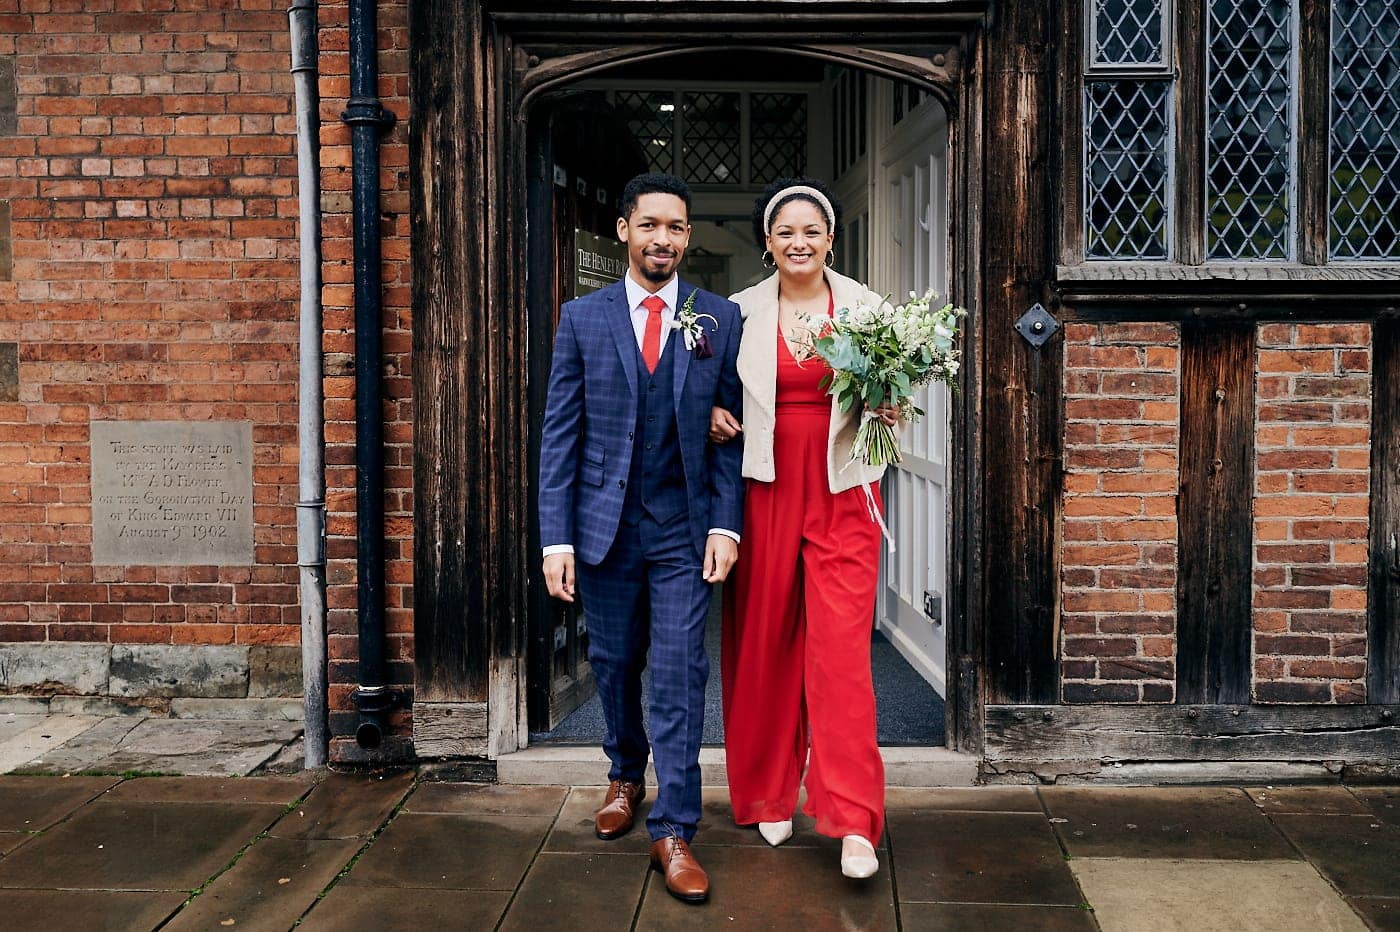 Bride and groom walk out of The Henley Room in Stratford-upon-Avon after small wedding ceremony